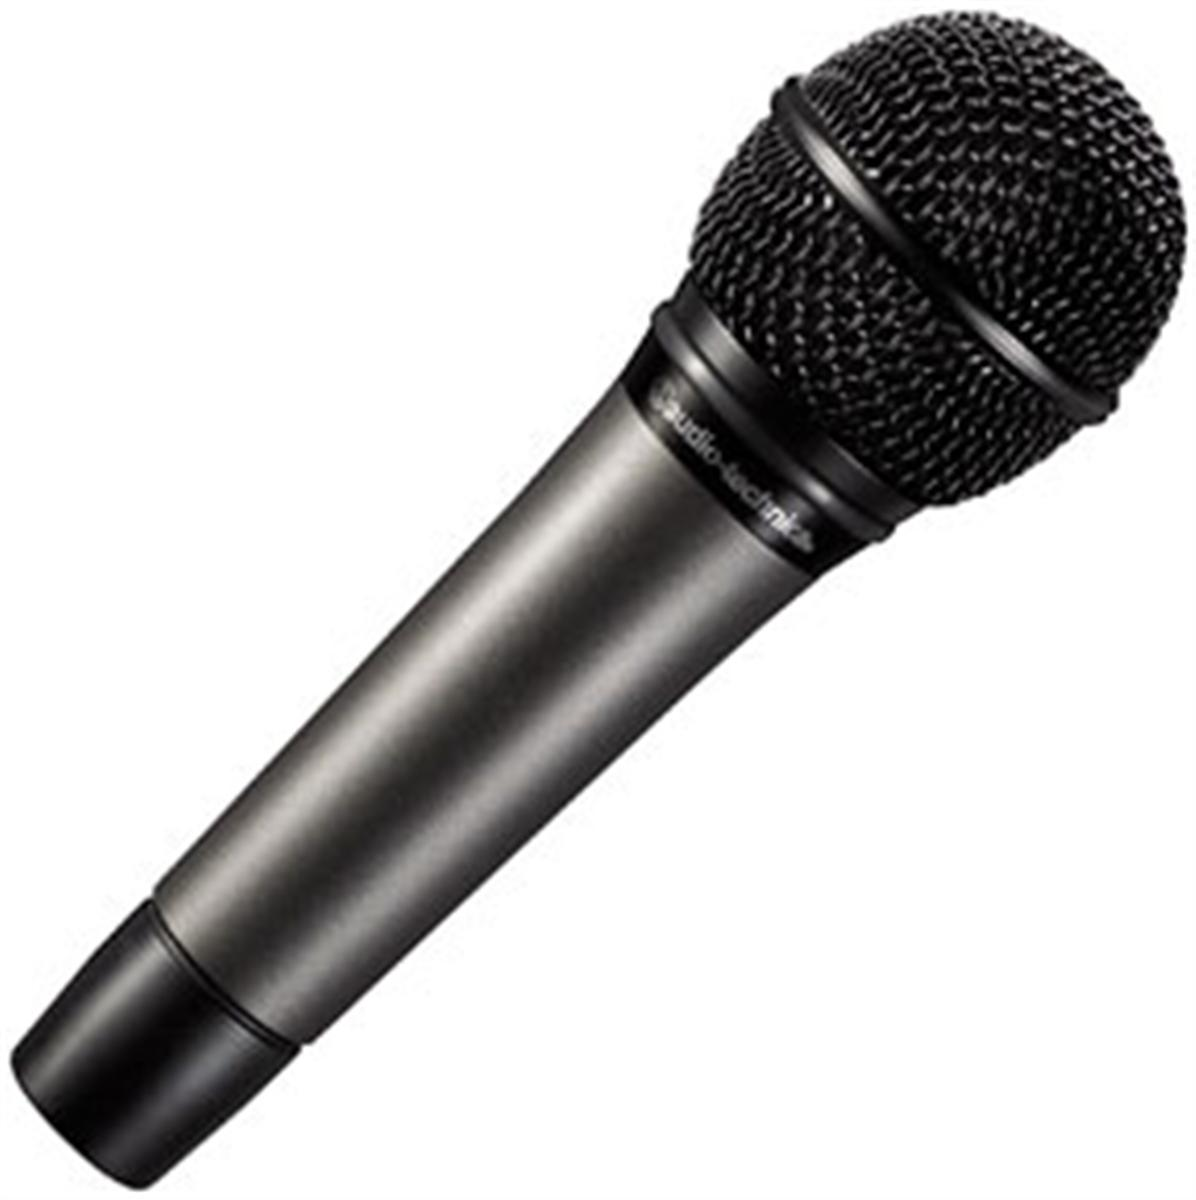 atm410 microphone | clipart panda - free clipart images